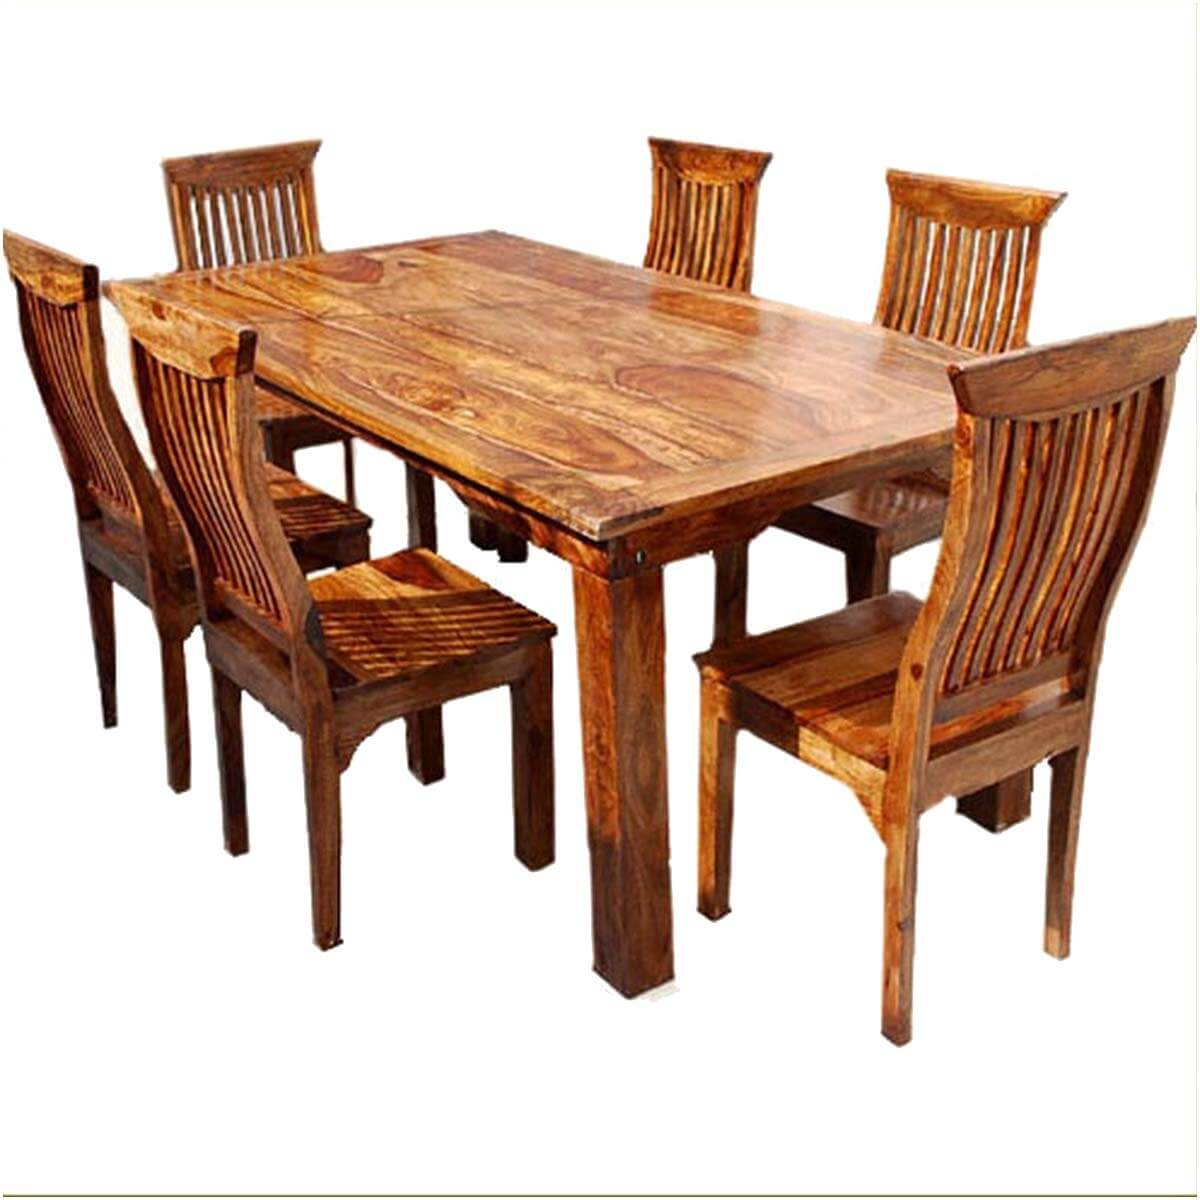 Rustic Dining Room Table Set: Dallas Ranch Solid Wood Rustic Dining Table Chairs & Hutch Set